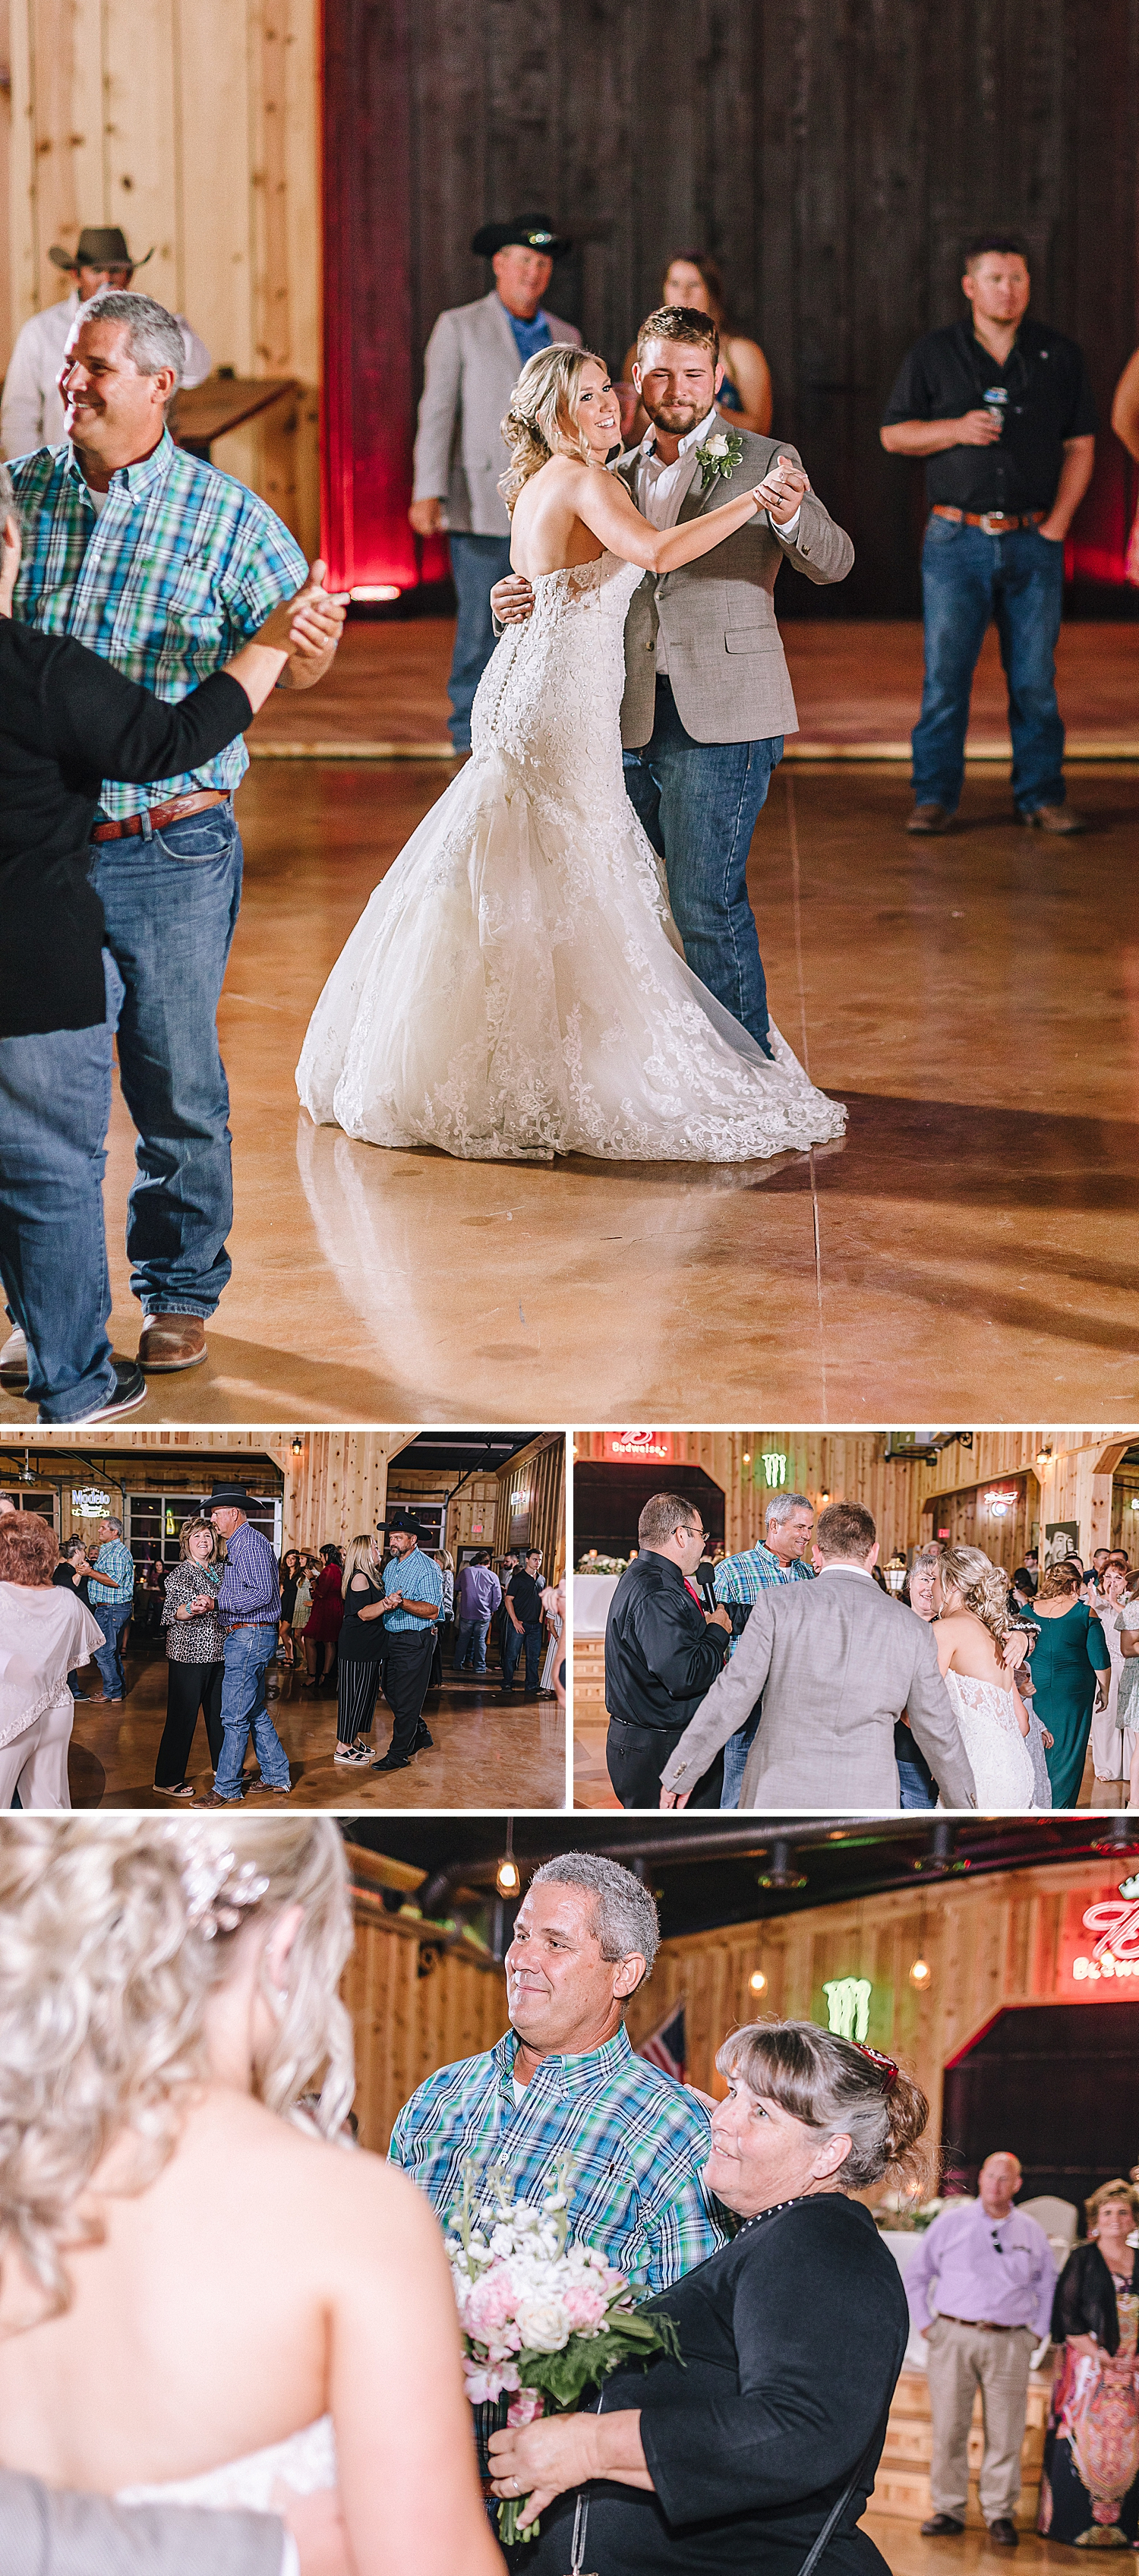 Rackler-Ranch-LaVernia-Texas-Wedding-Carly-Barton-Photography_0137.jpg